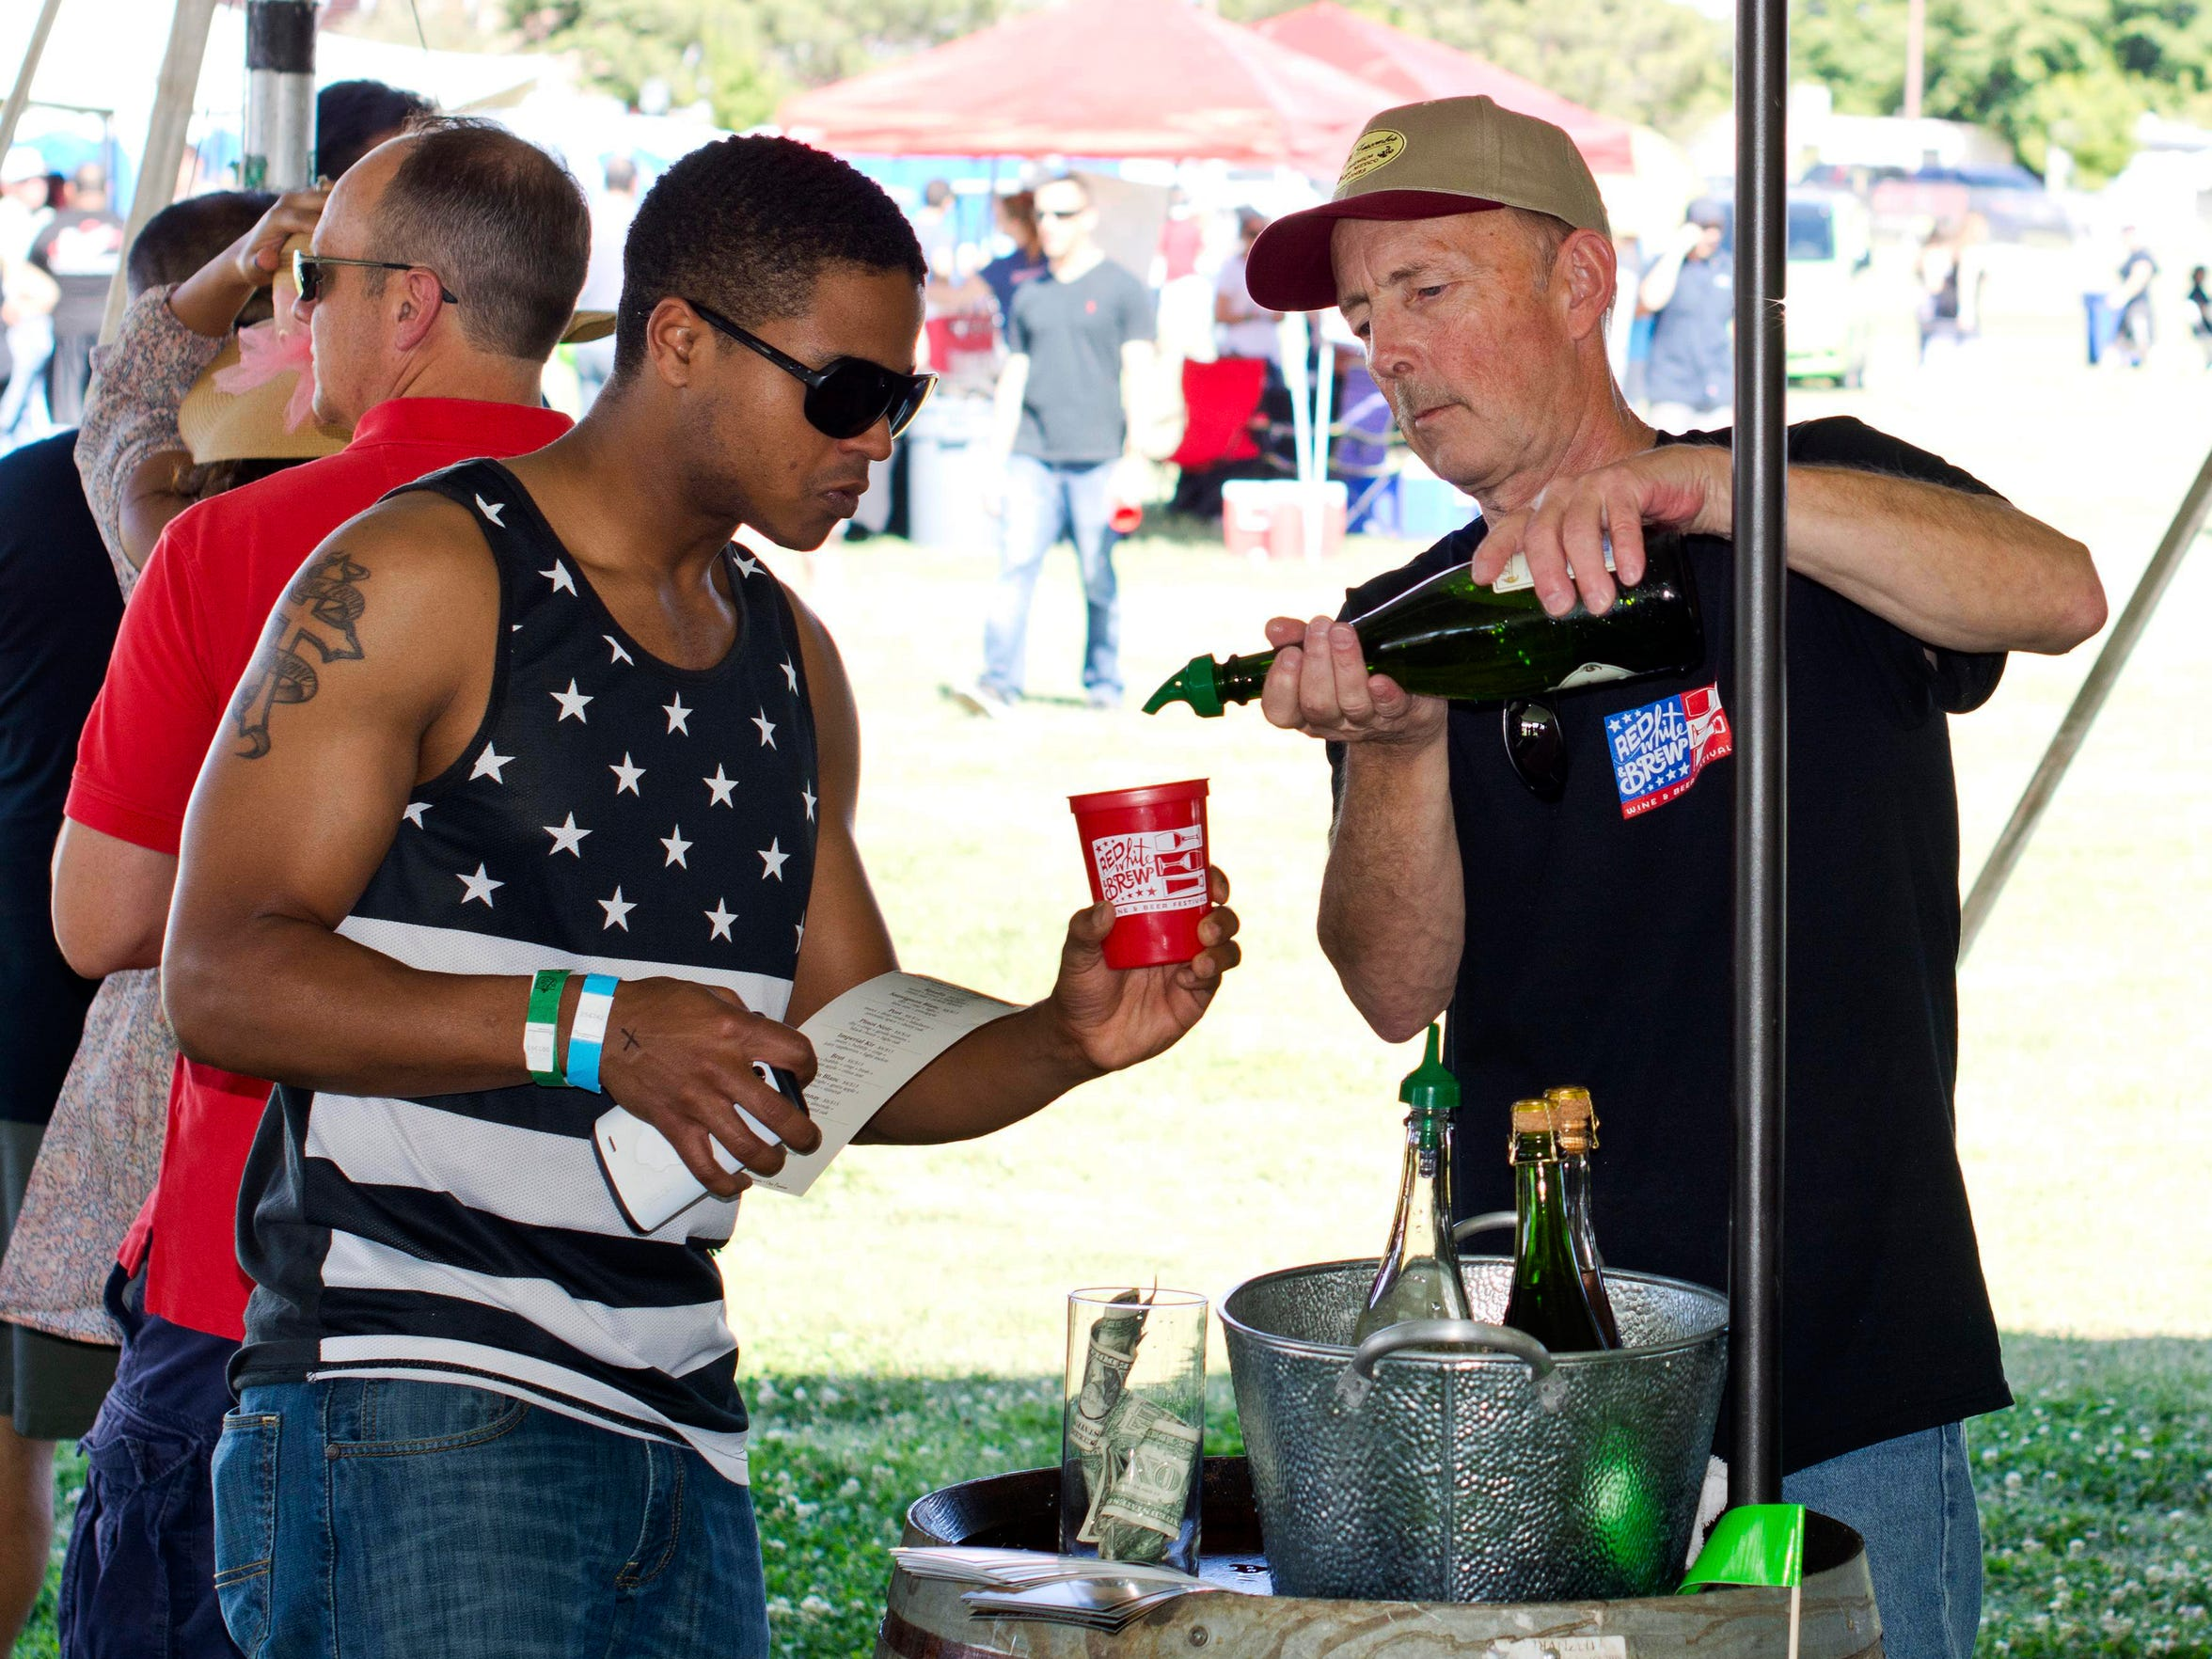 The 2017 Red, White & Brew Beer and Wine Fest is taking festivities indoor to offer relief from the summer heat.